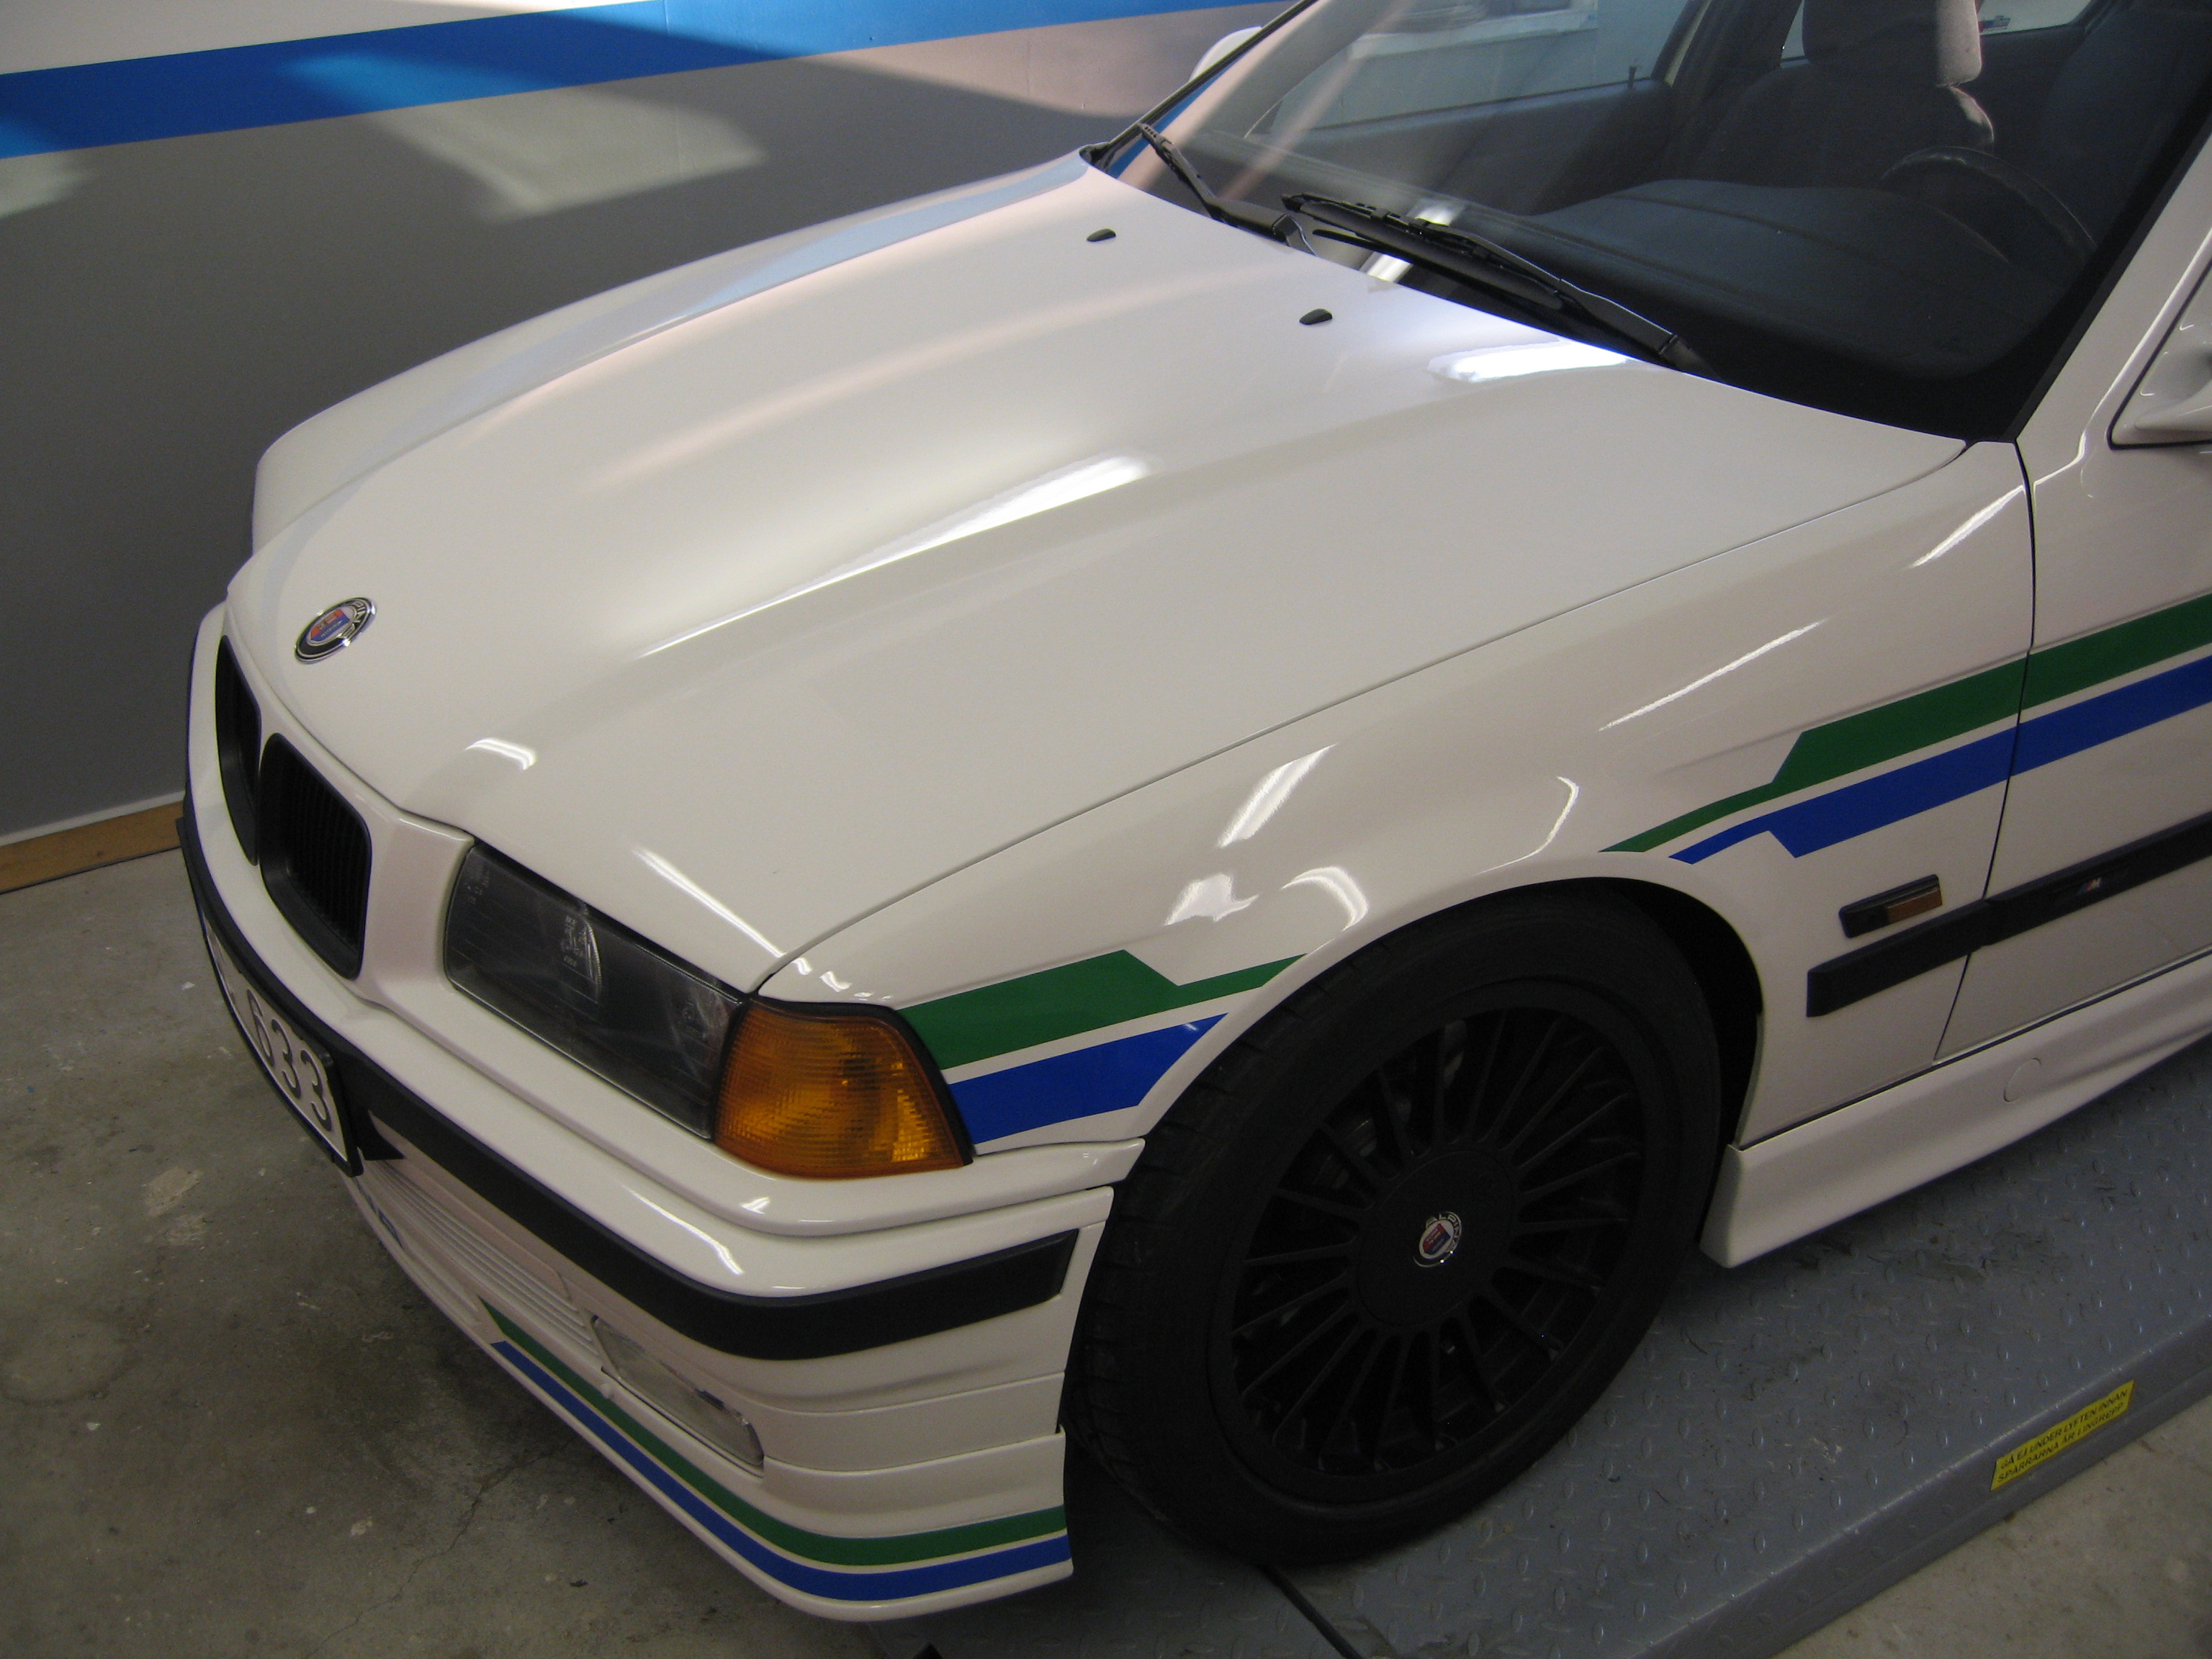 For sale: Alpina B3 #79 - BMW M5 Forum and M6 Forums